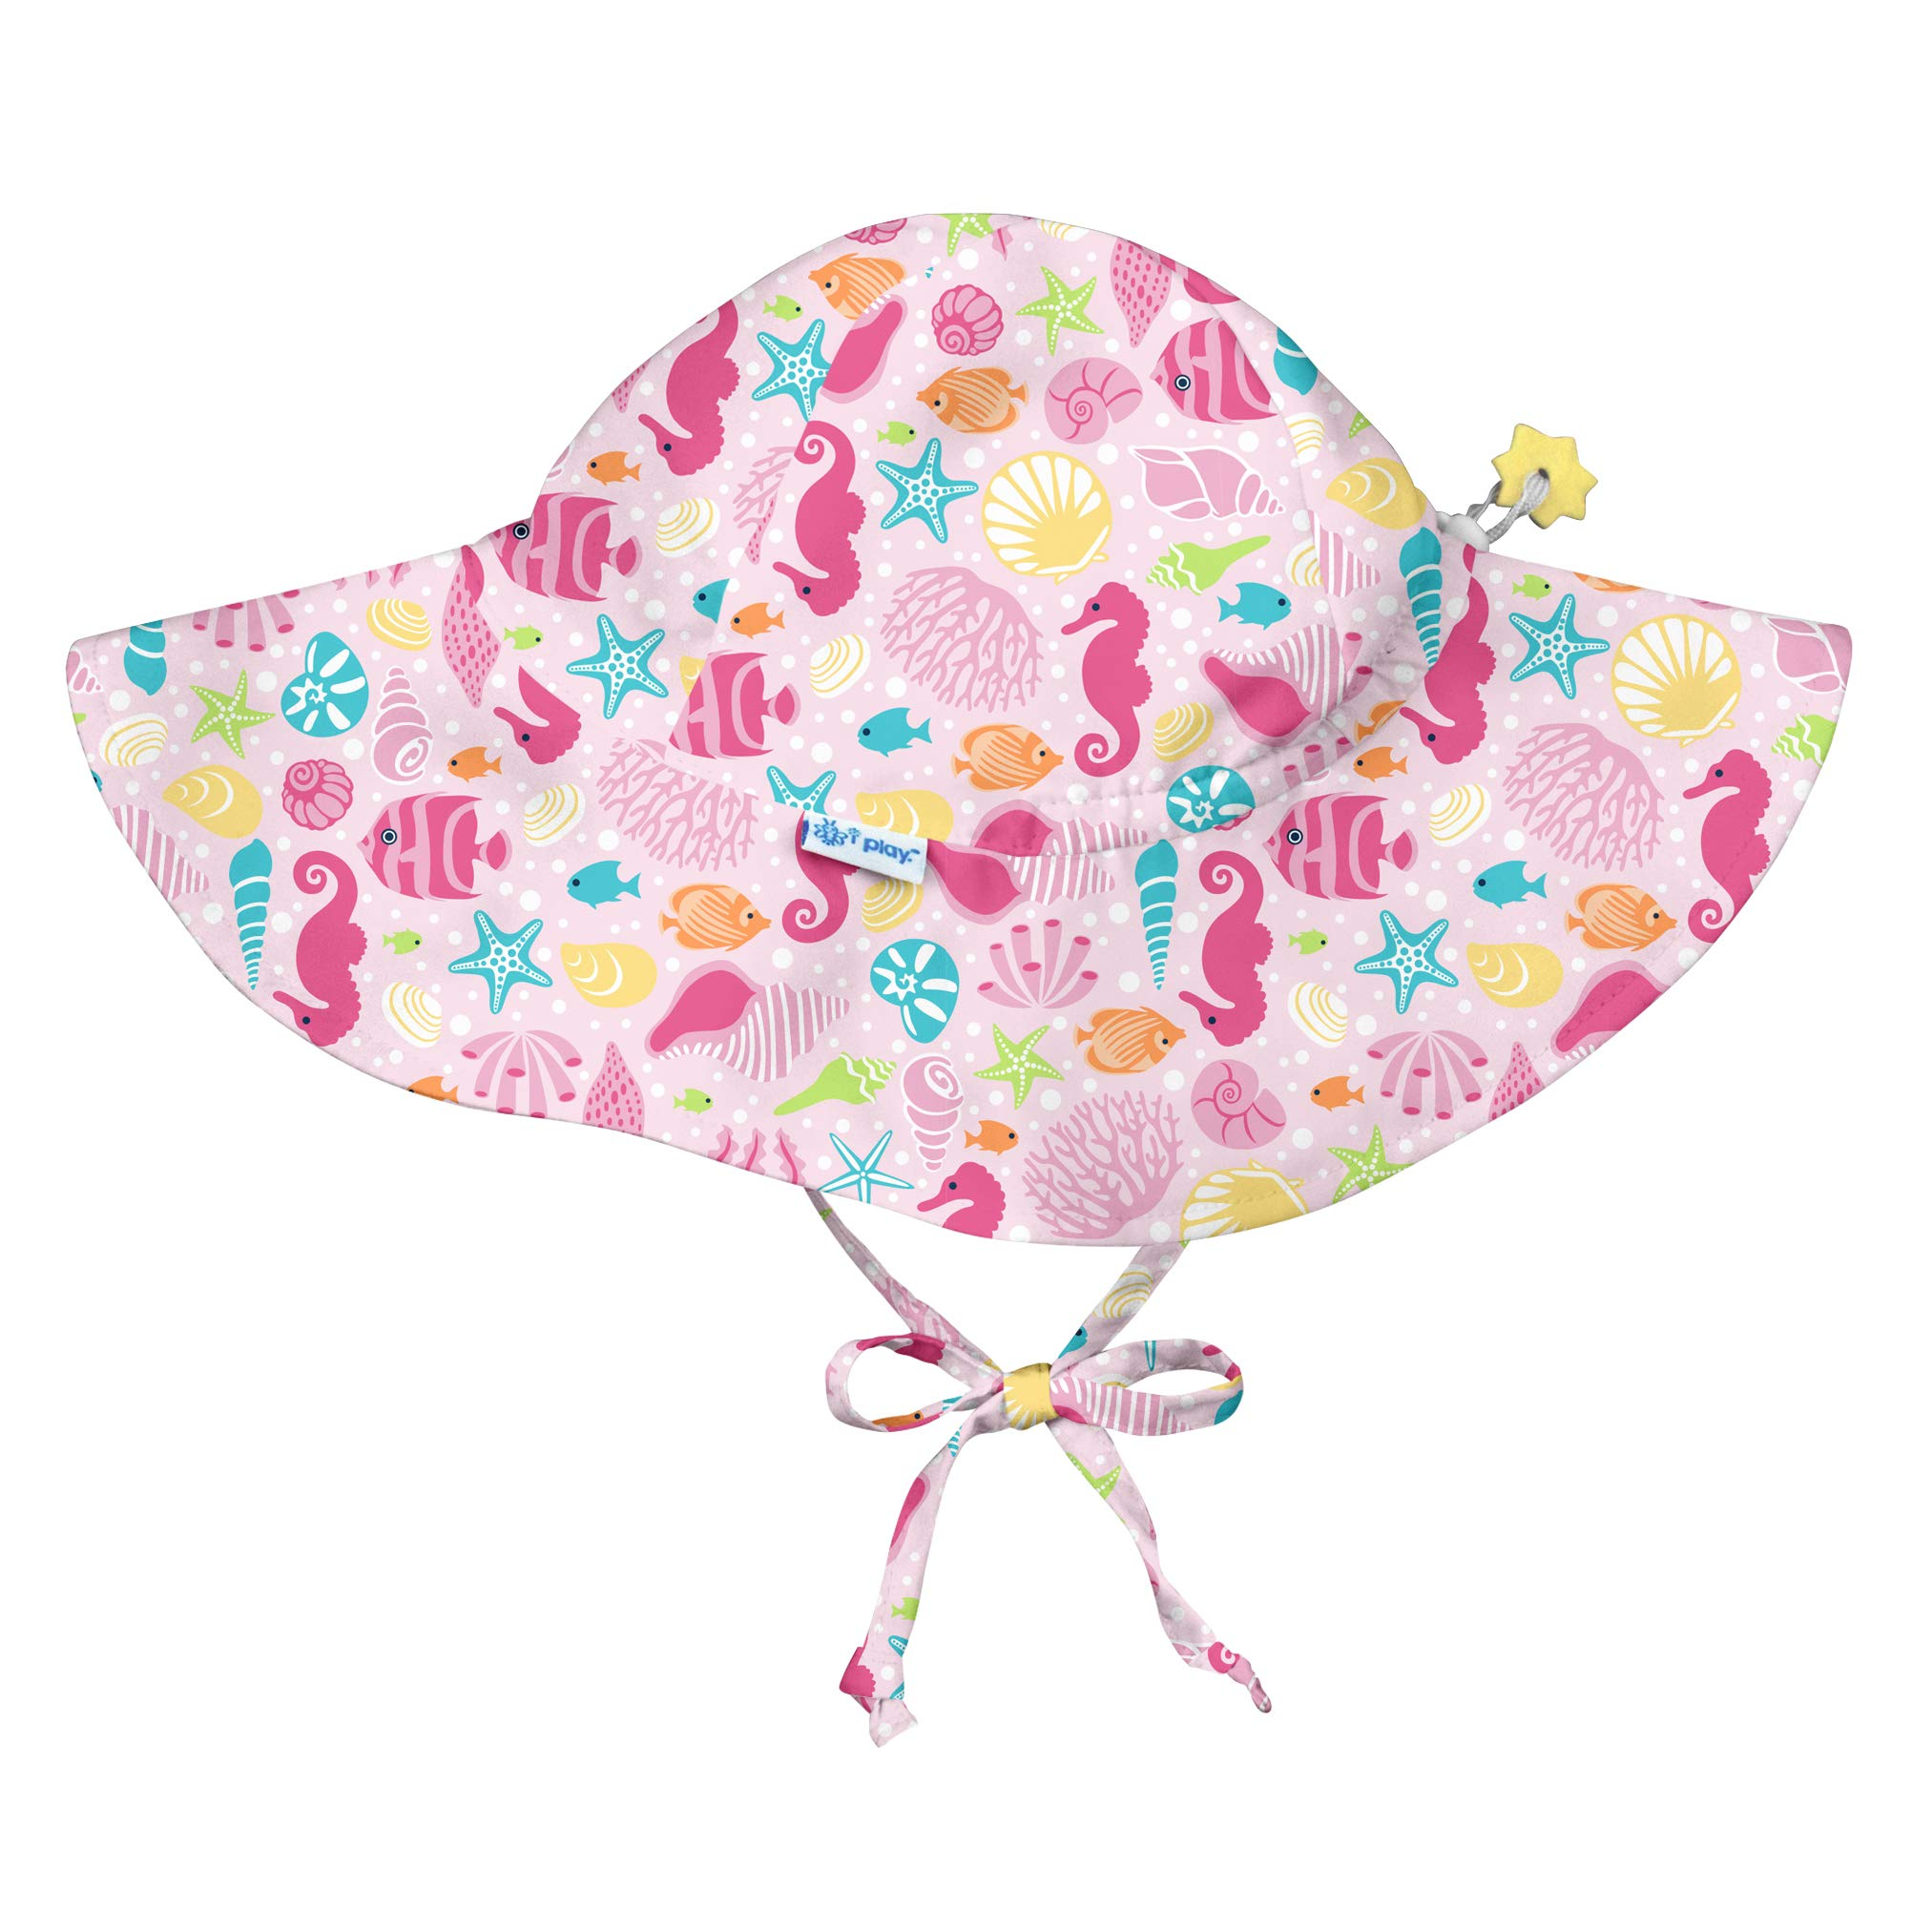 i play. Girls' Toddler Brim Sun Protection Hat-Pink Sealife-2T/4T, Sealife, 2T/4T by i play.